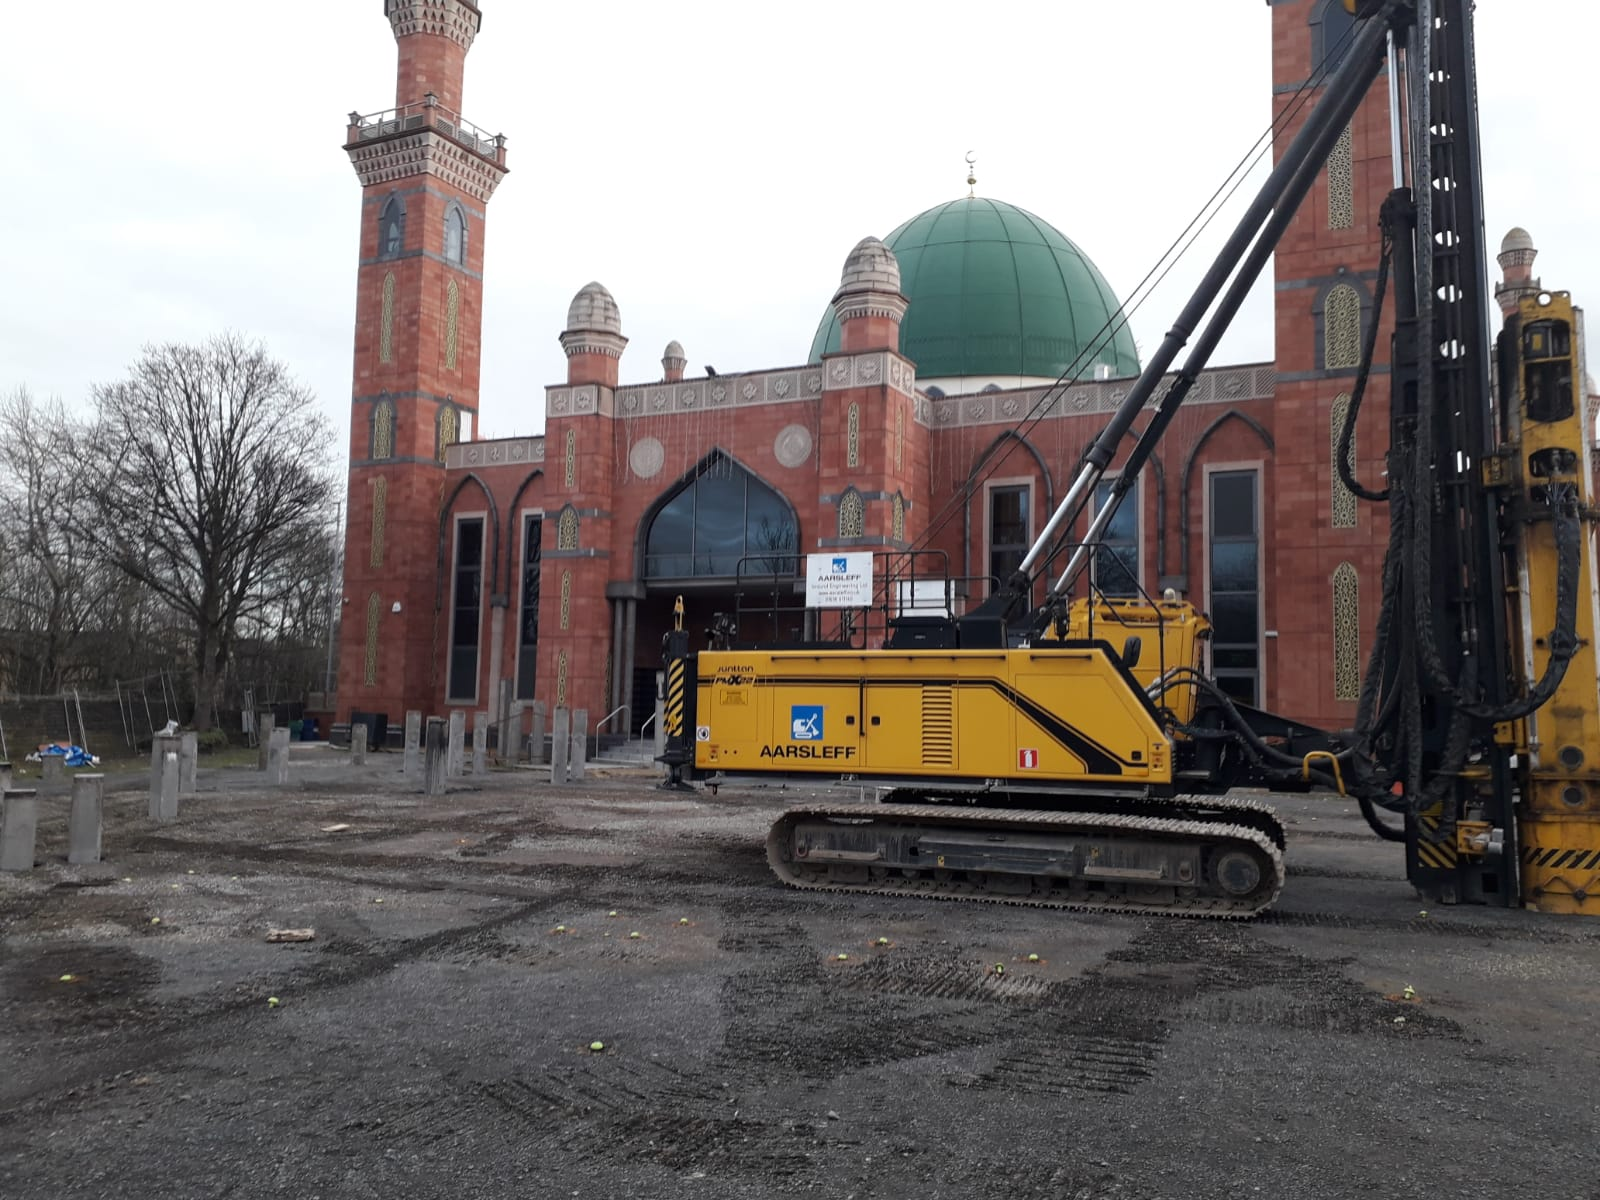 Piling for a Mosque in Bradford